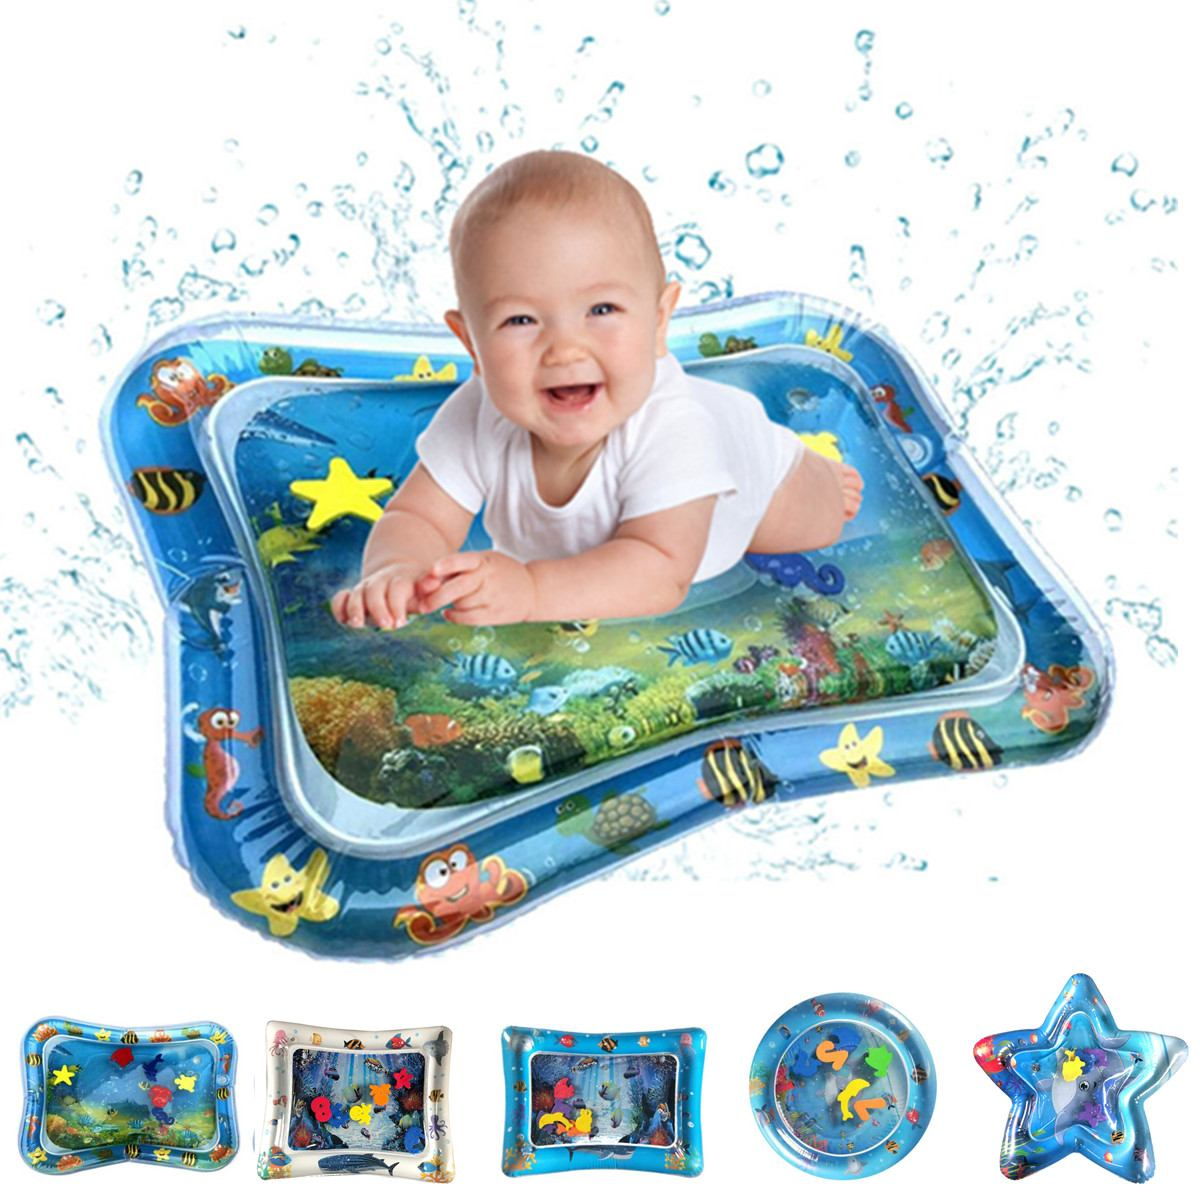 Baby Inflatable Water Play Mat Infant Summer Beach Water Mat Toddler Fun Activity Play Toy For Sensory Stimulation Motor Skills